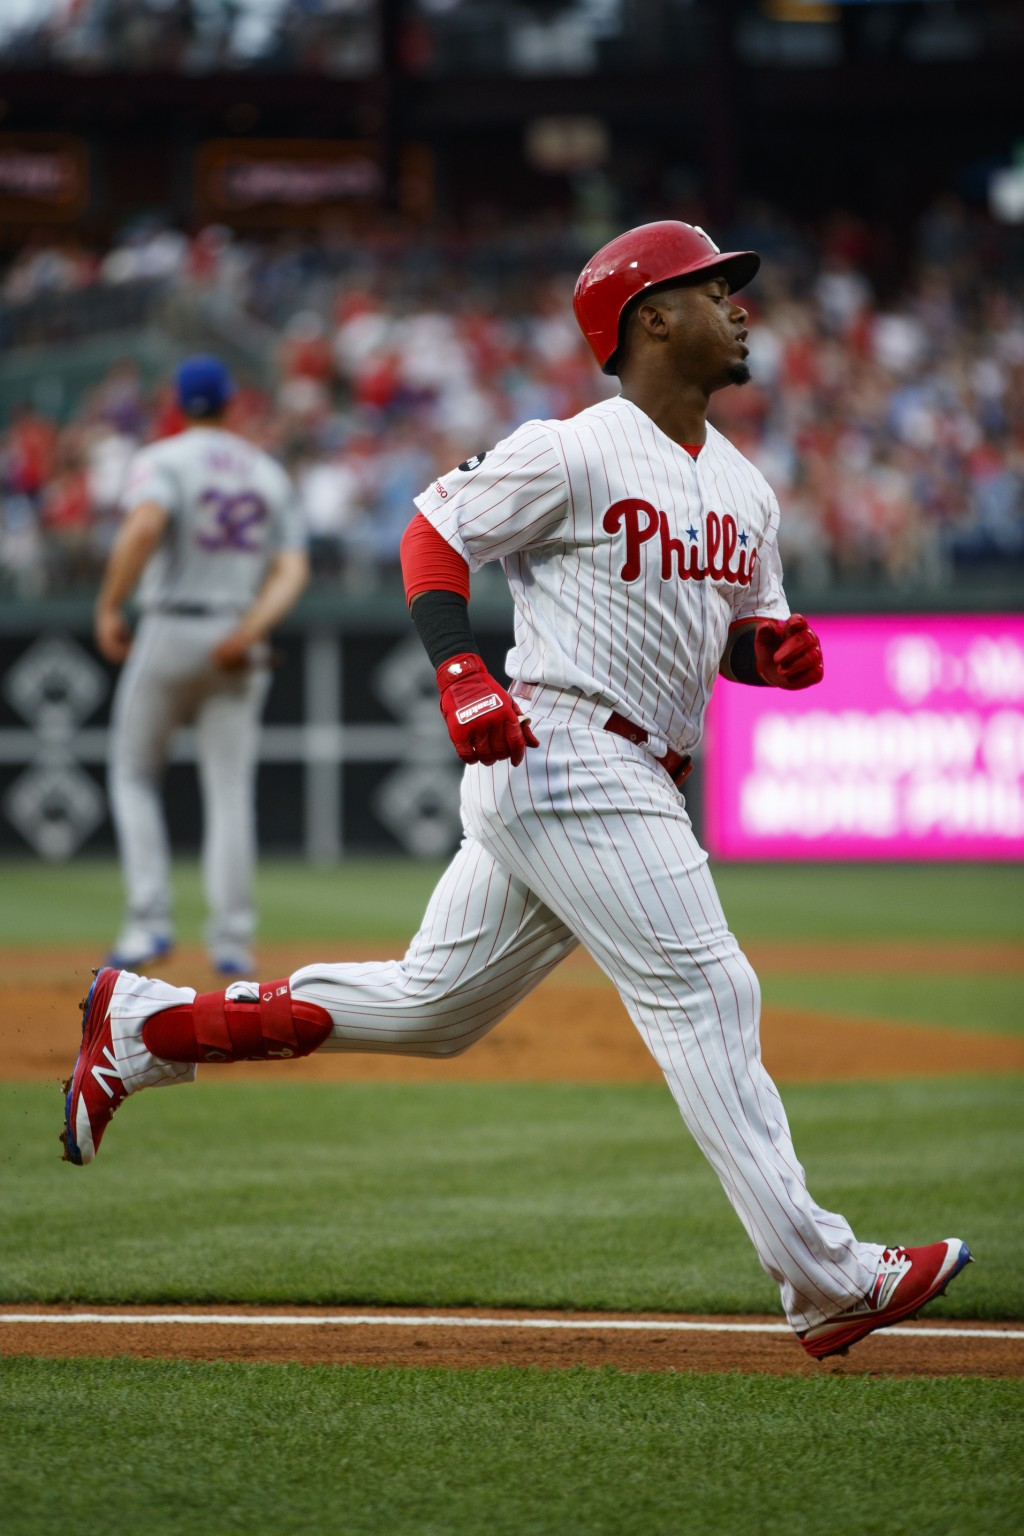 Philadelphia Phillies' Jean Segura, foreground, rounds the bases after hitting a home run off New York Mets starting pitcher Steven Matz, back left, d...